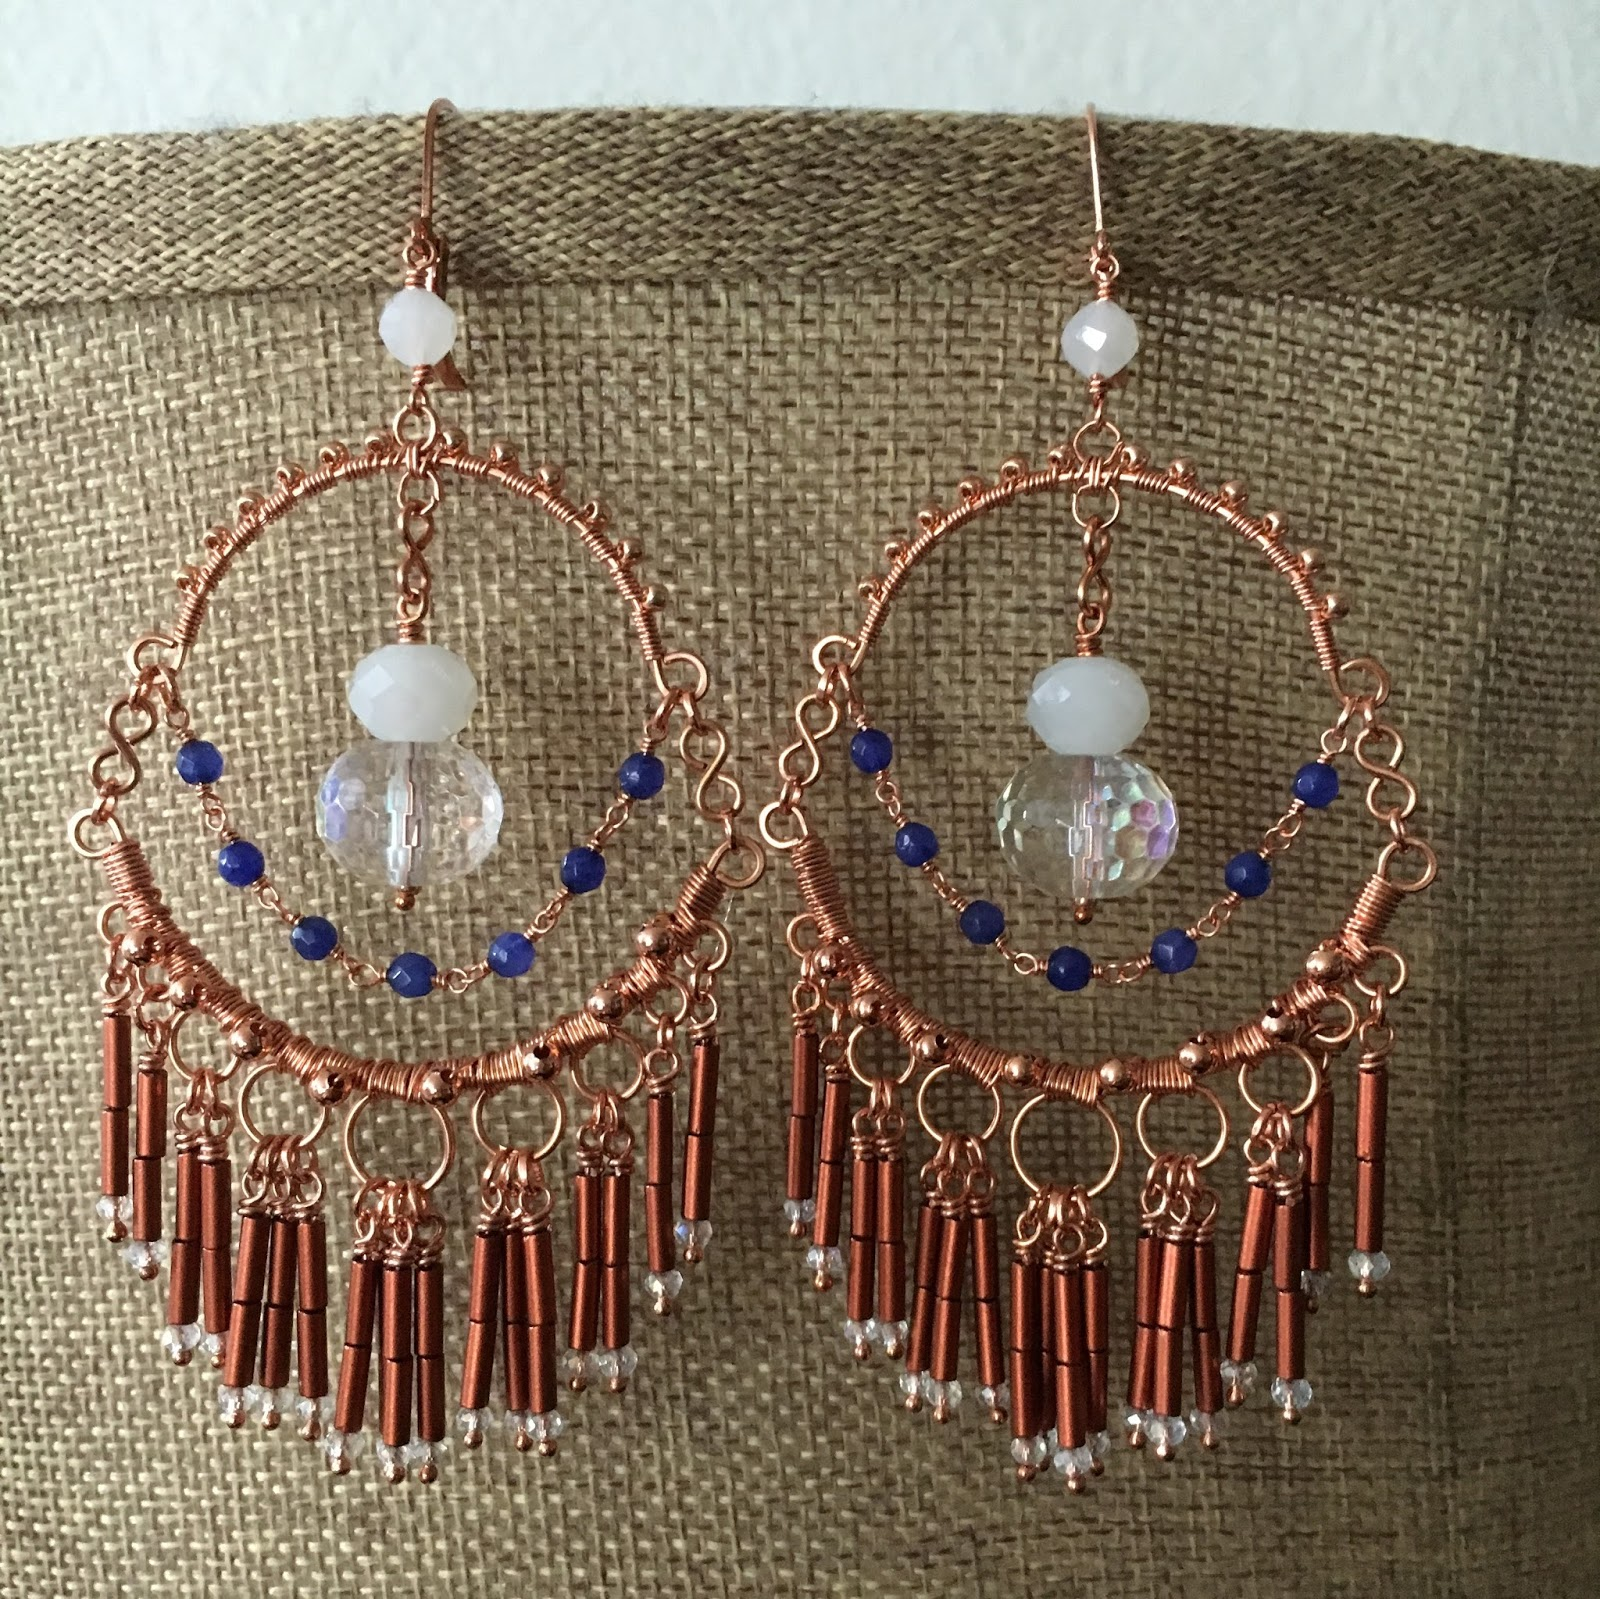 Small Earrings Can Pull It Off, Yes!